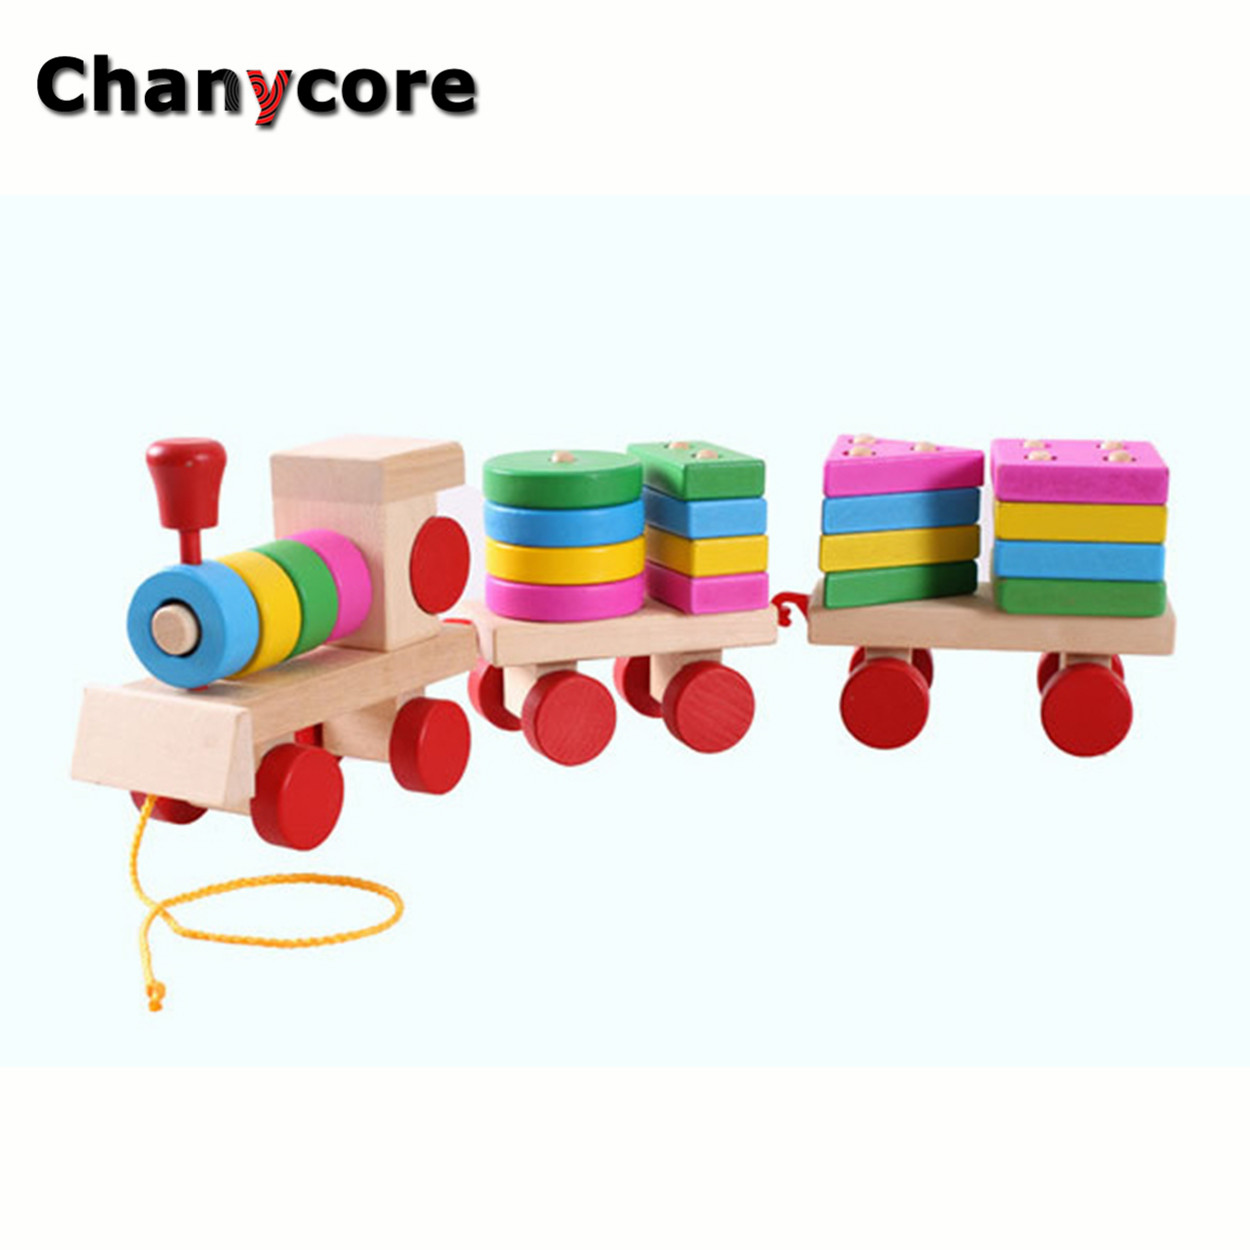 Baby Learning Educational Wooden Toys Geometric Shape Blocks Column Board Train Sorting Matching ydl Montessori Kids Gifts 4124